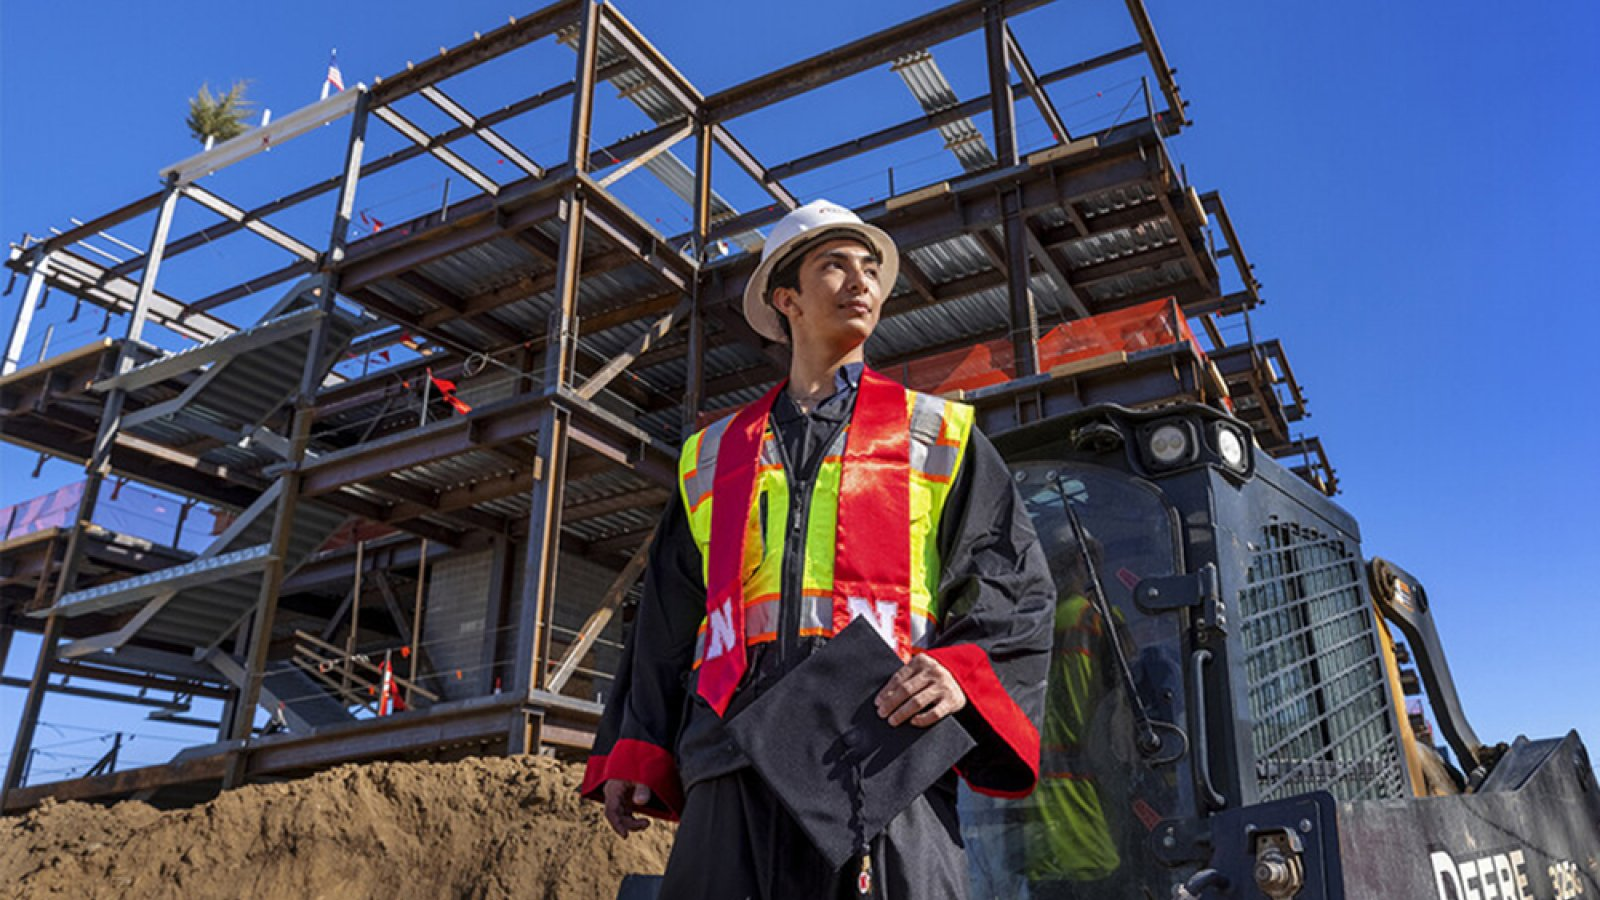 Yajyoo Shrestha, a graduating senior in civil engineering, stands before the construction site of the new College of Education and Human Sciences building on City Campus. (Craig Chandler / University Communication)